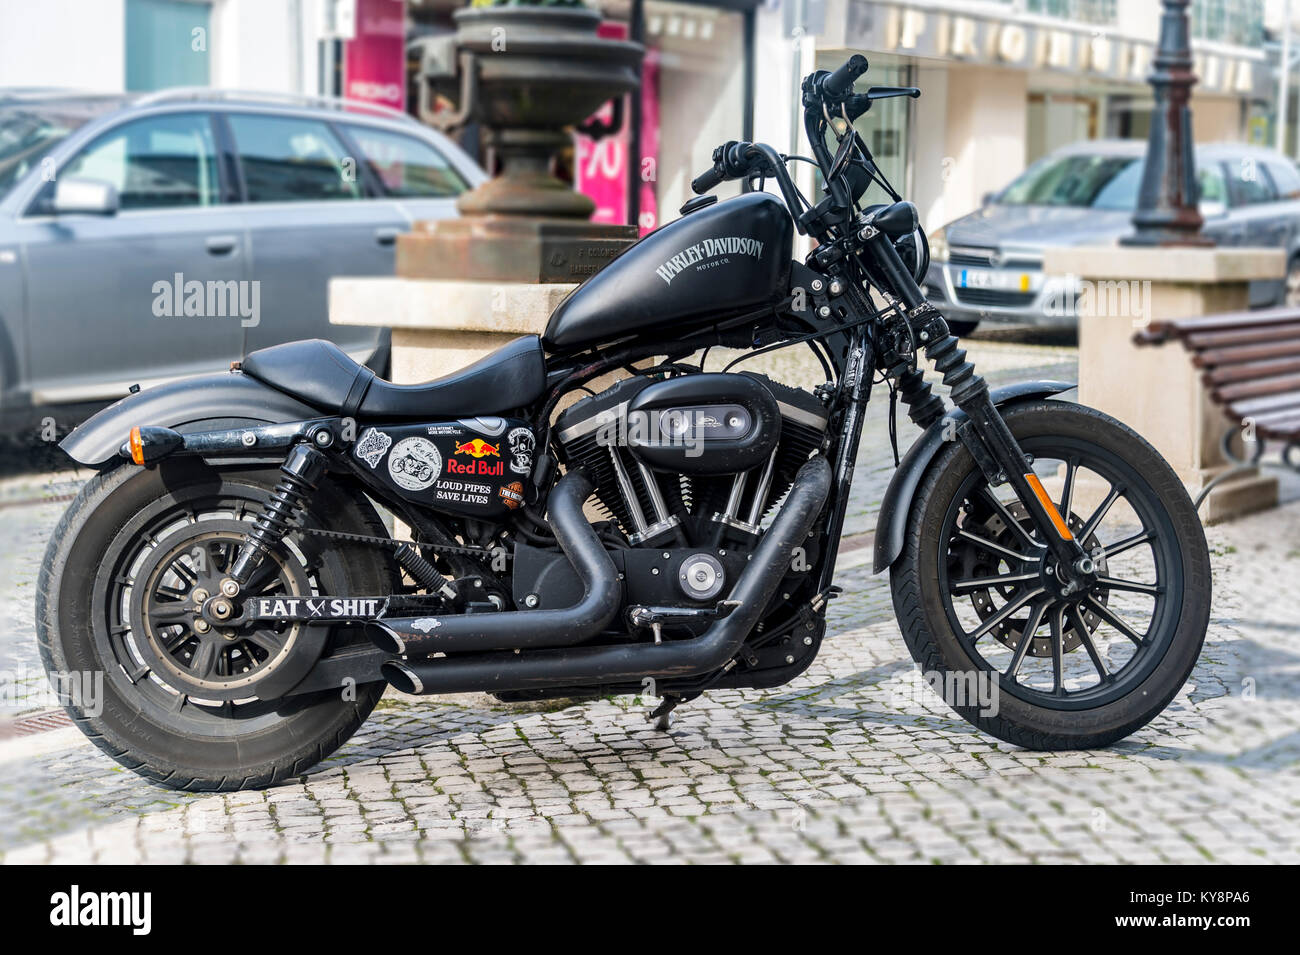 Harley Davidson motorcycle in matte black parked on a cobbled street in Portugal. - Stock Image